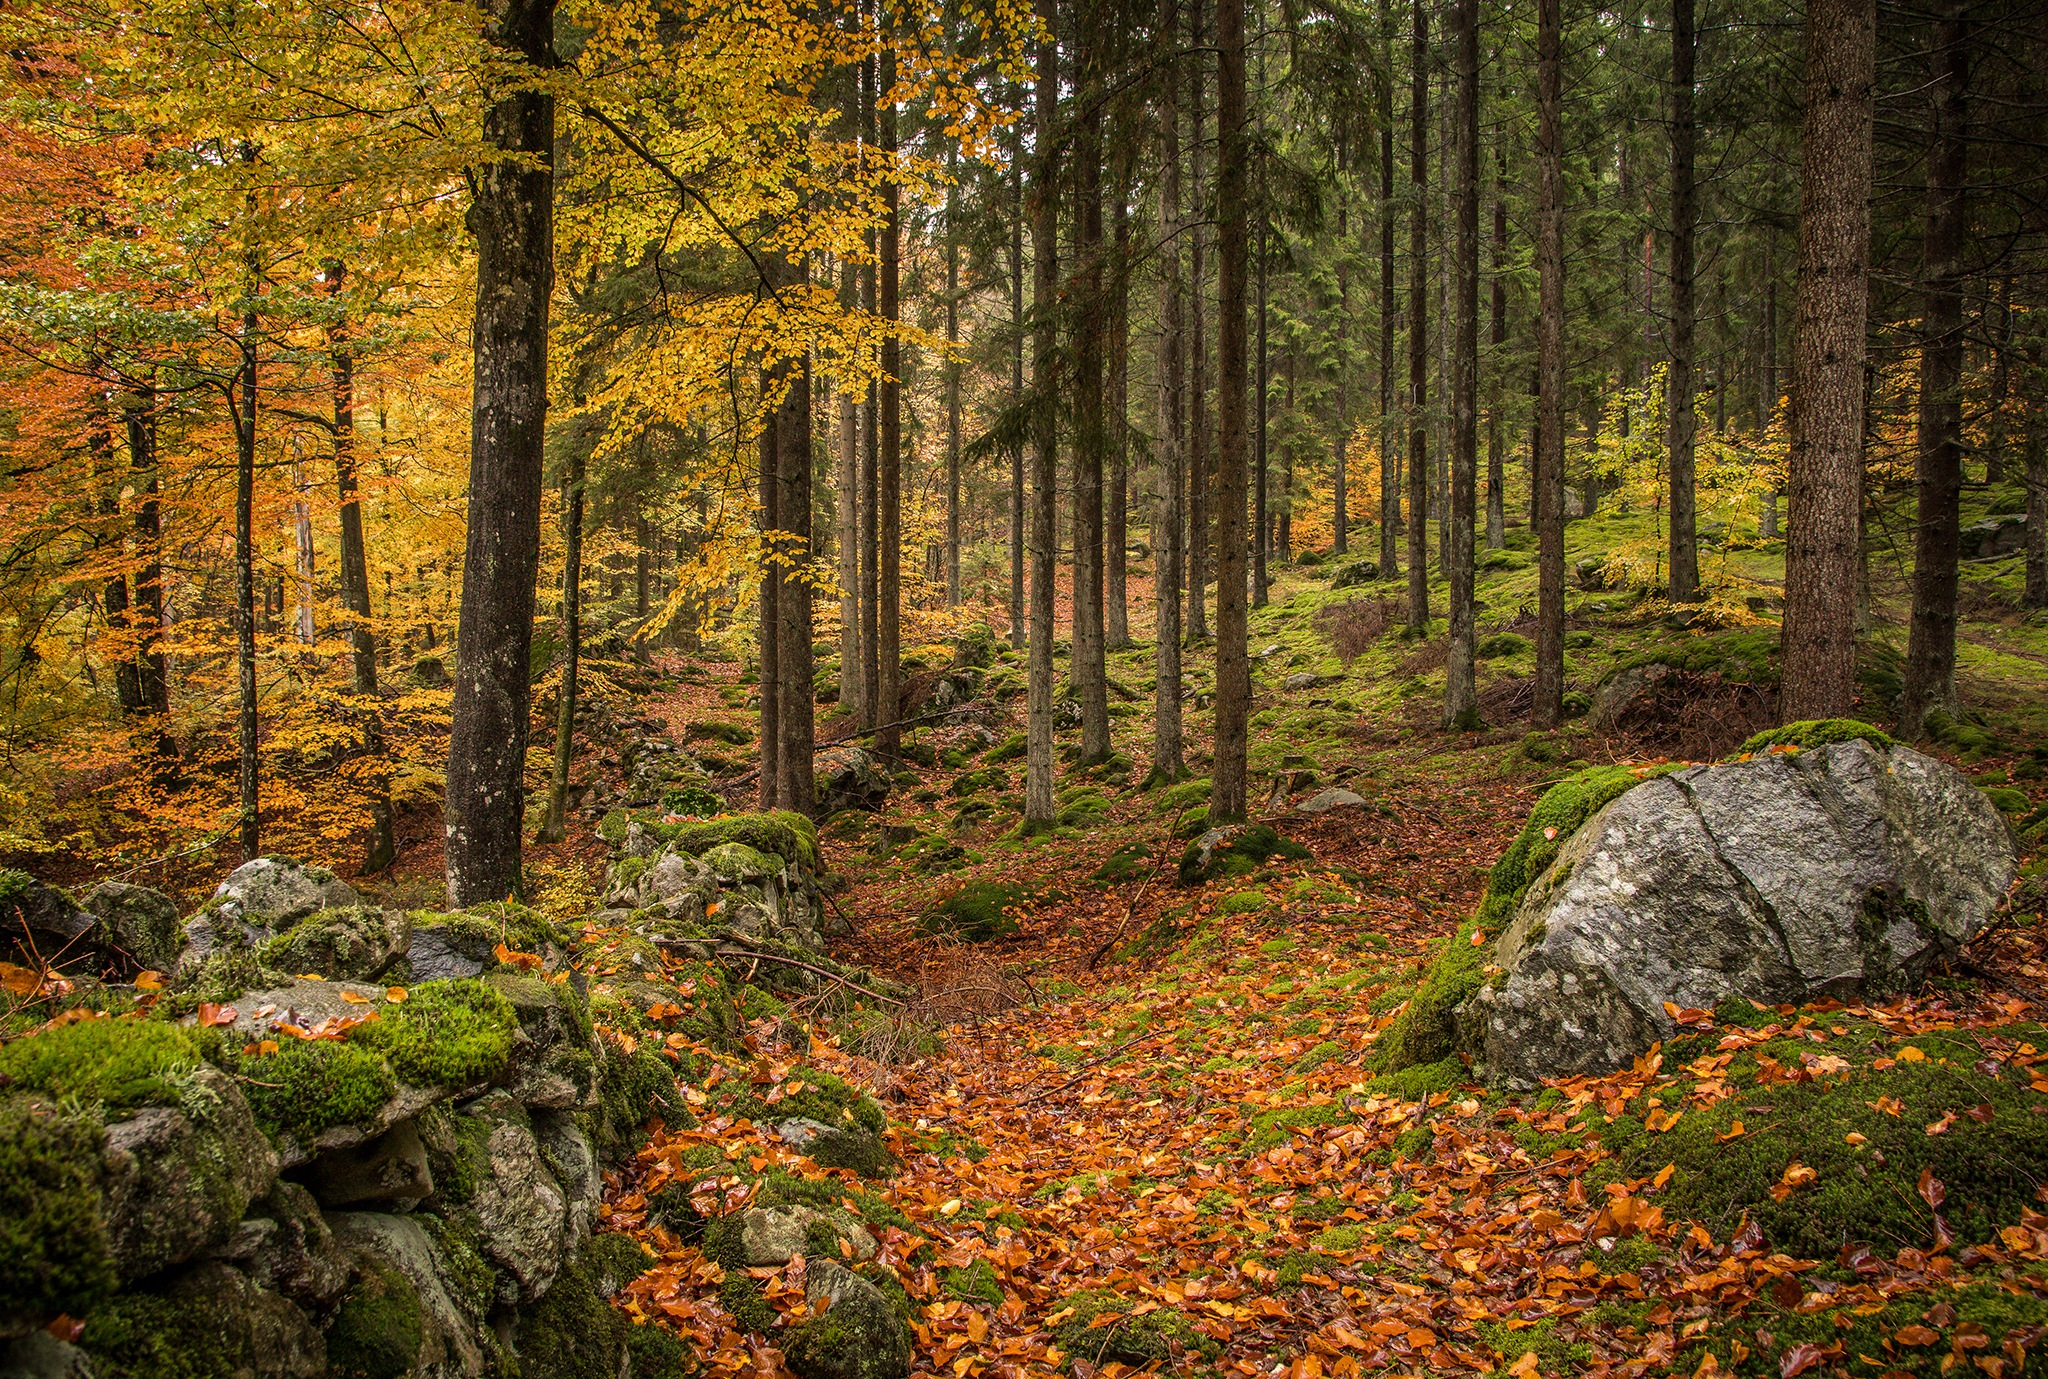 Forest view by elisah